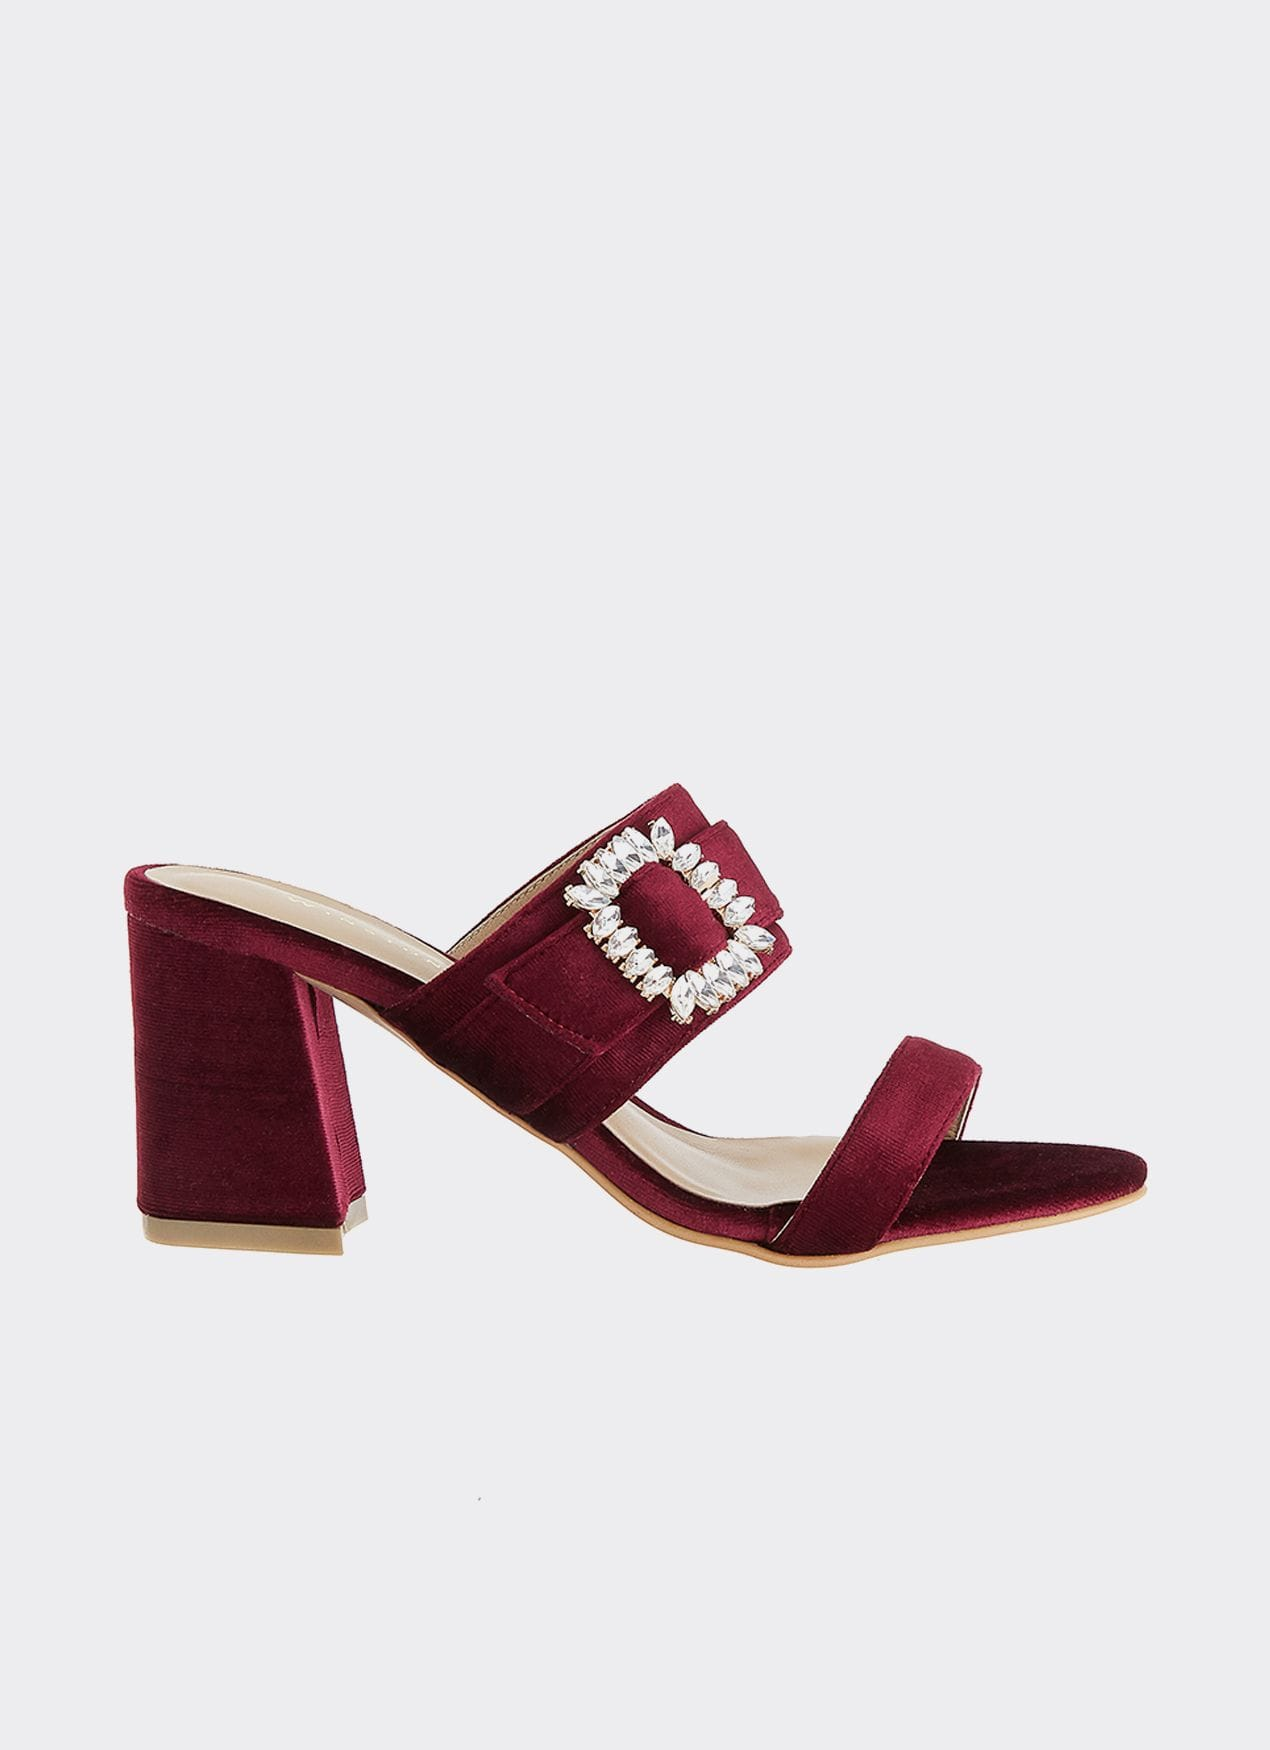 Winston Smith Maroon Renata Block Heels Sandals